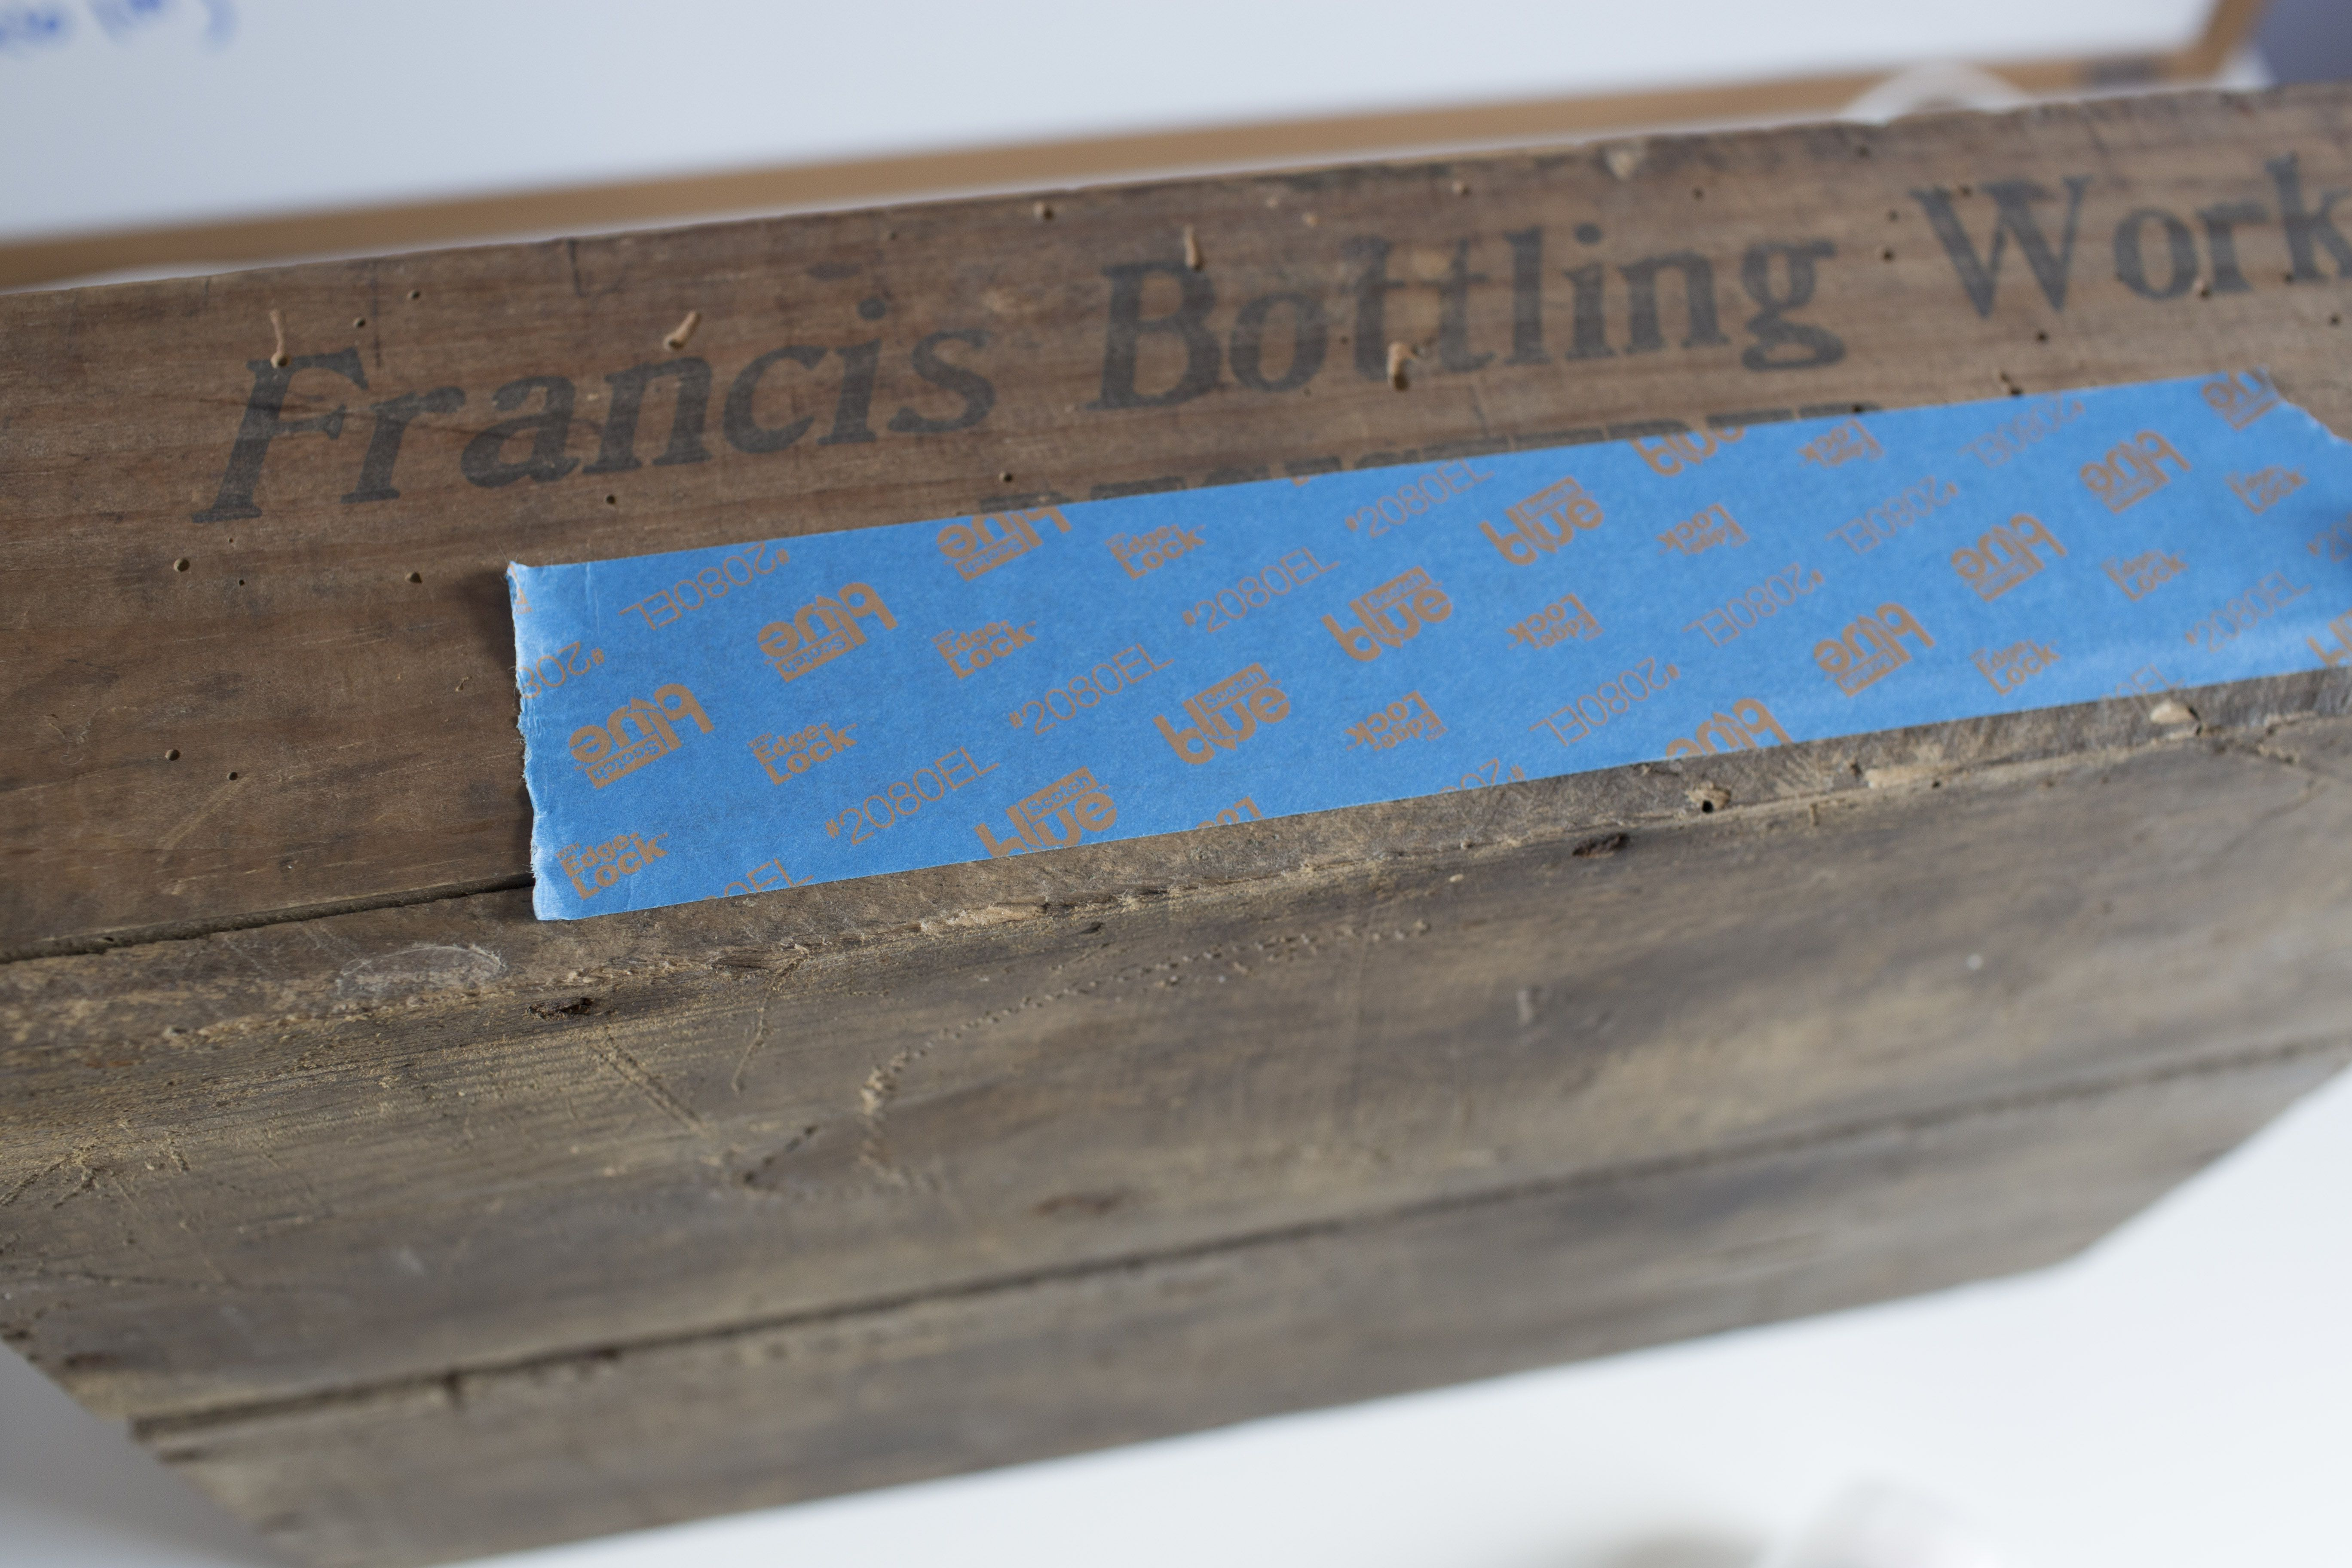 Painter's tape on a wooden crate